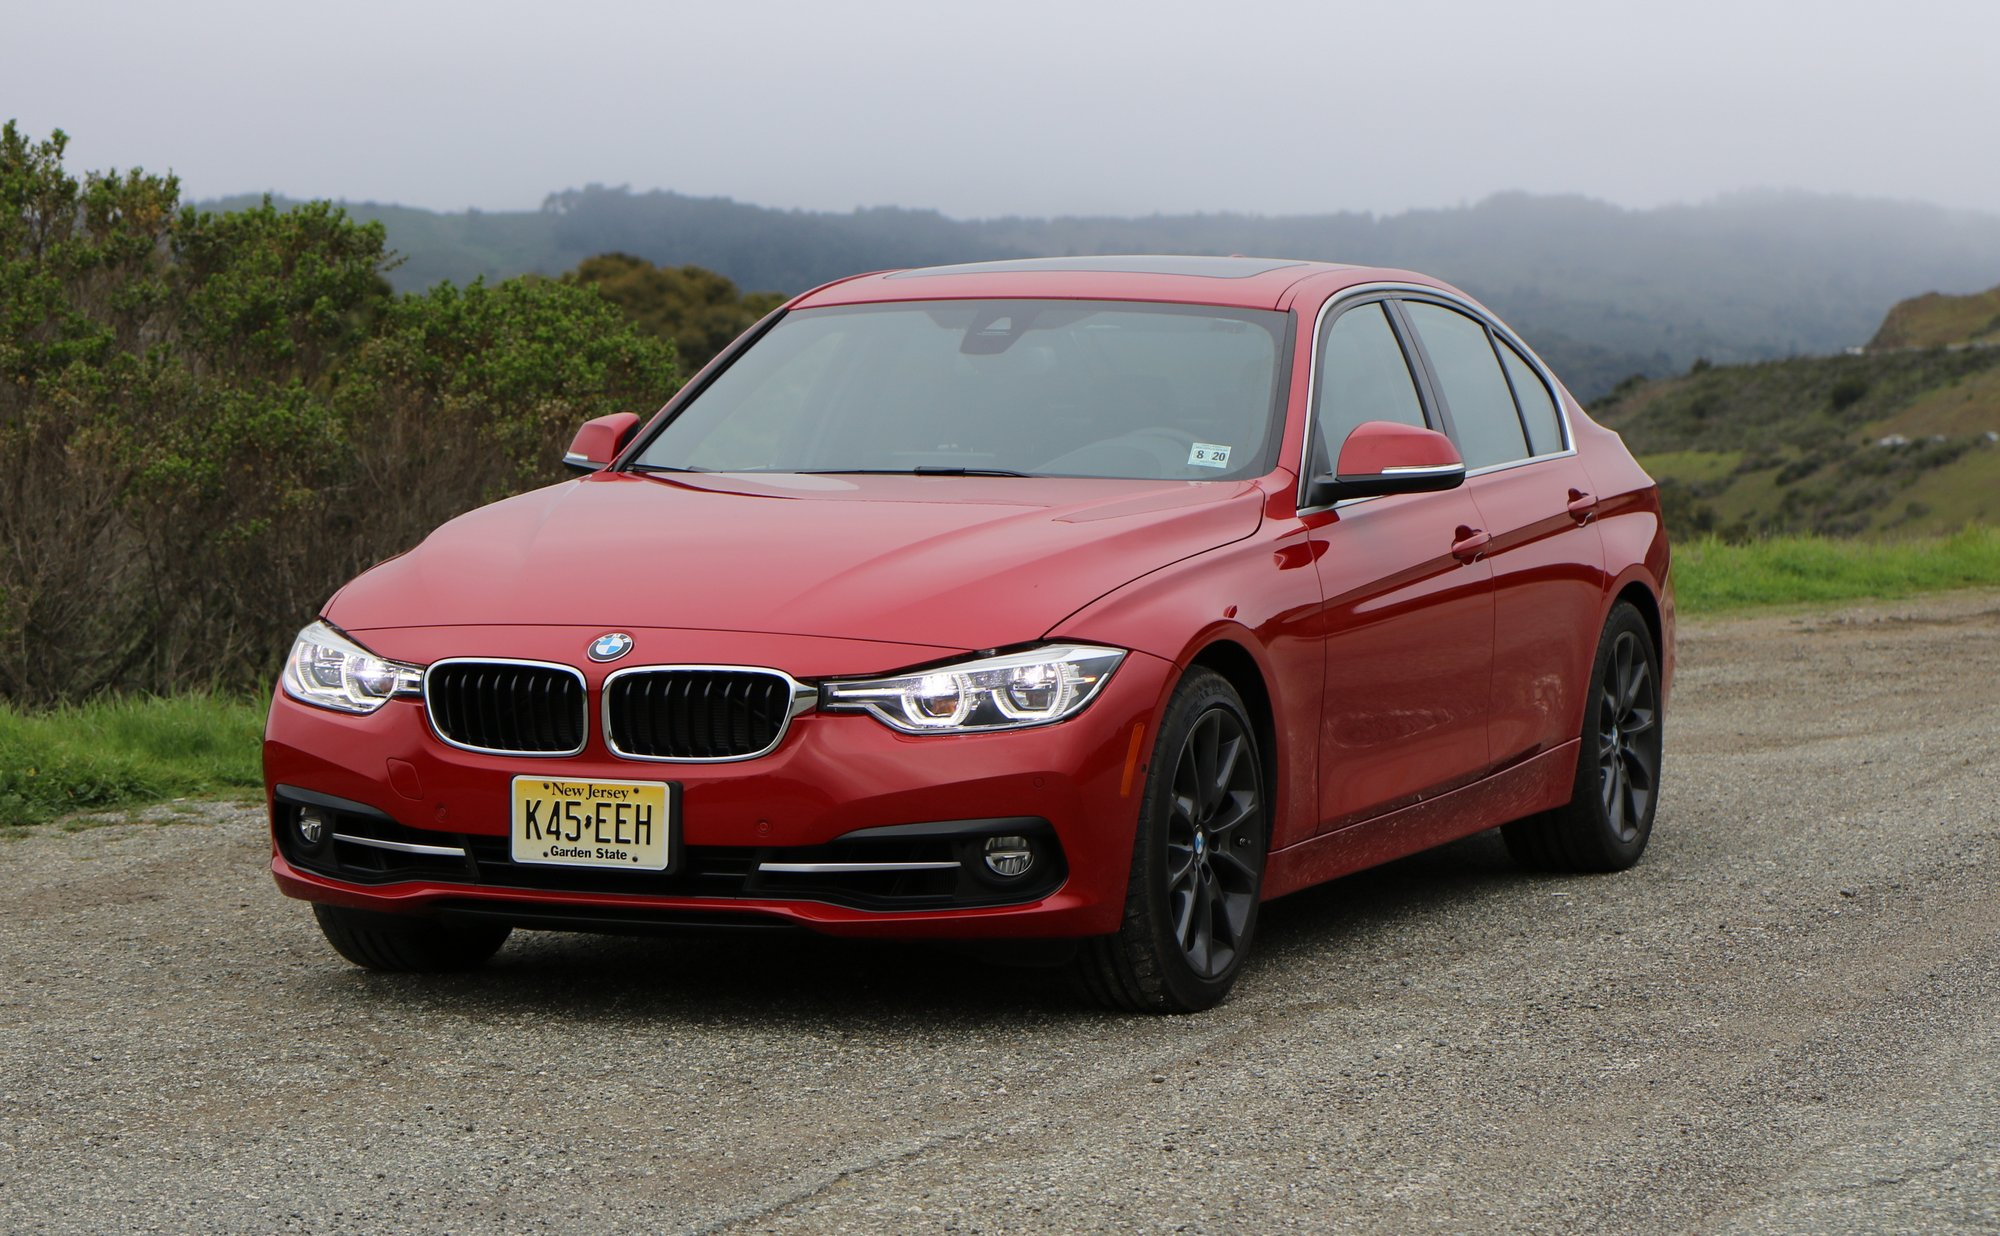 2016 BMW 340i Review – The Lightest of Refreshes